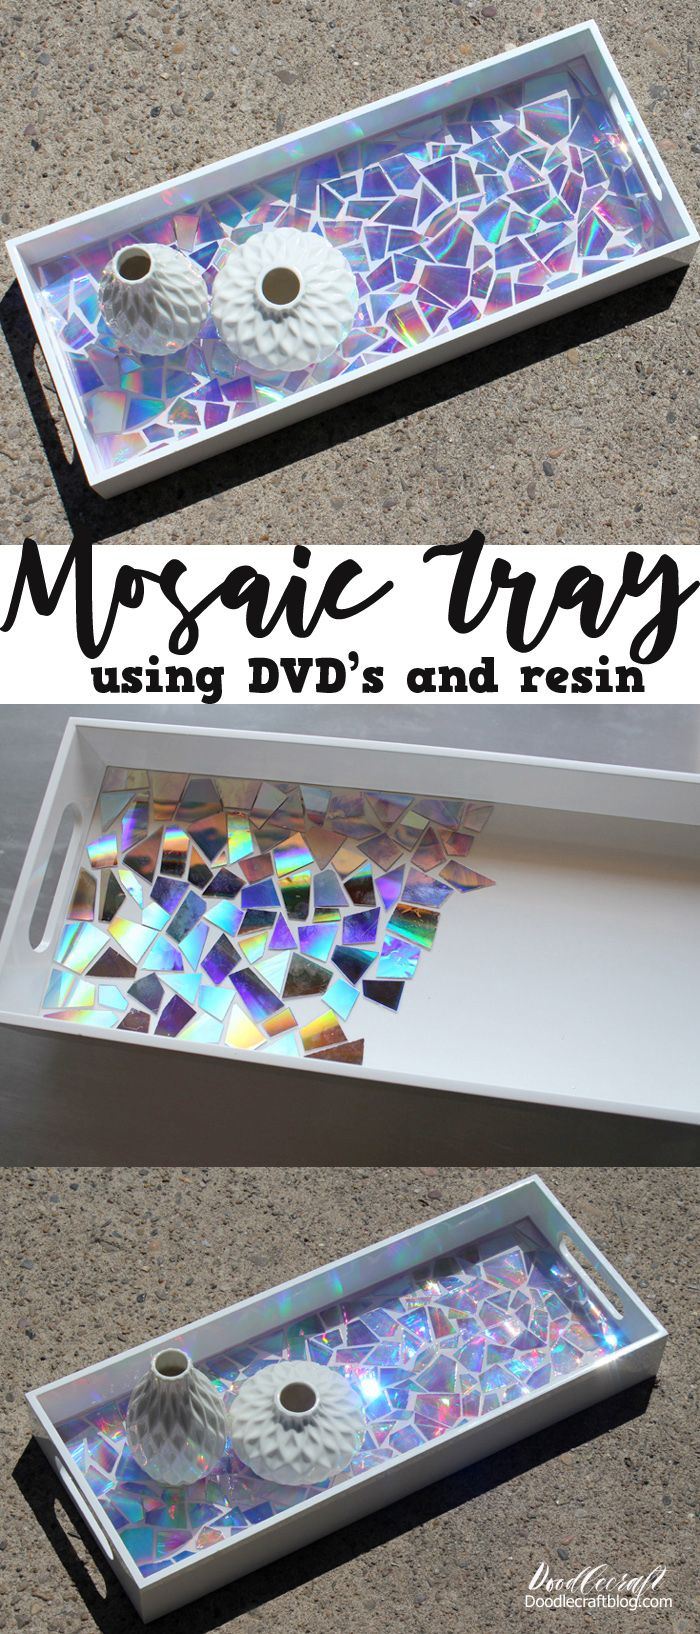 Photo of Recycled DVD's Mosaic Resin Tray